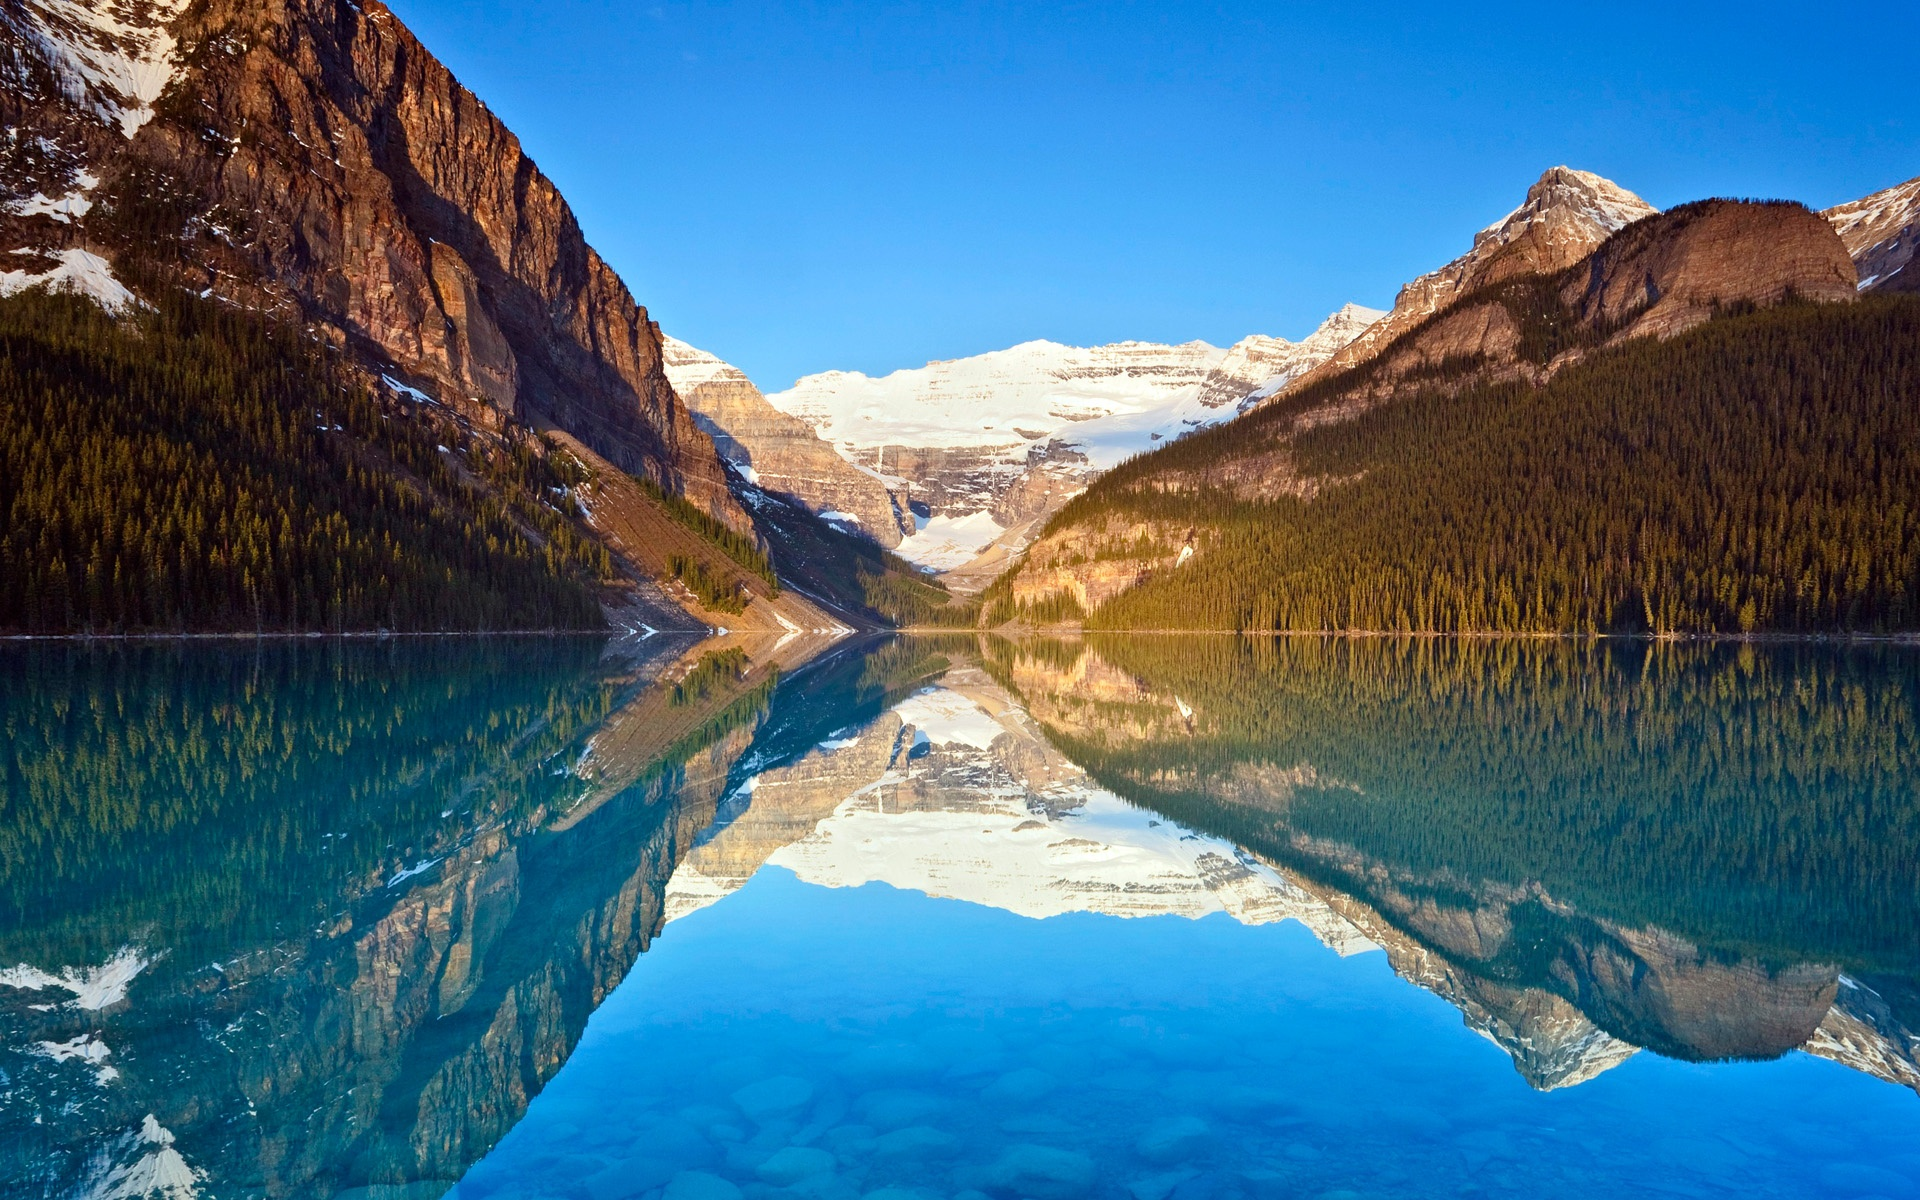 Cool Lake Wallpapers in jpg format for free download